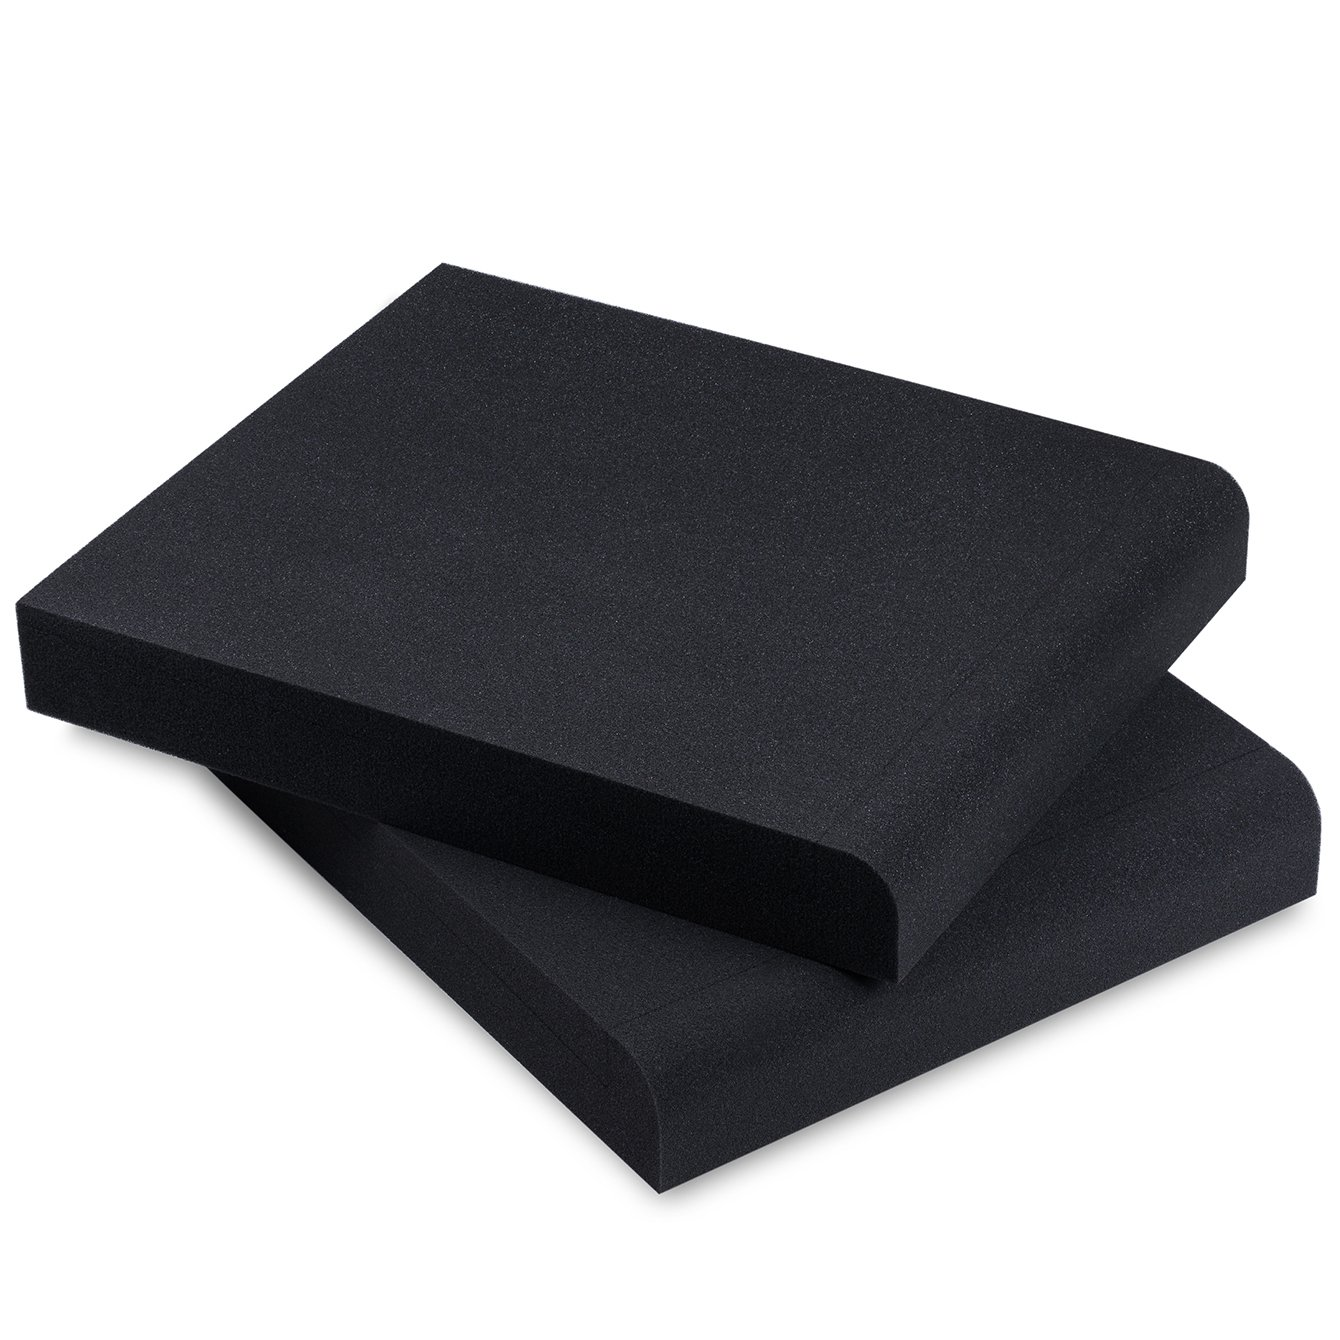 Sound Addicted - Studio Monitor Isolation Pads for 6.5'', 7'' and 8'' Inch Large Speakers | High Density Acoustic Foam Pair | SMPad 8 by Sound Addicted